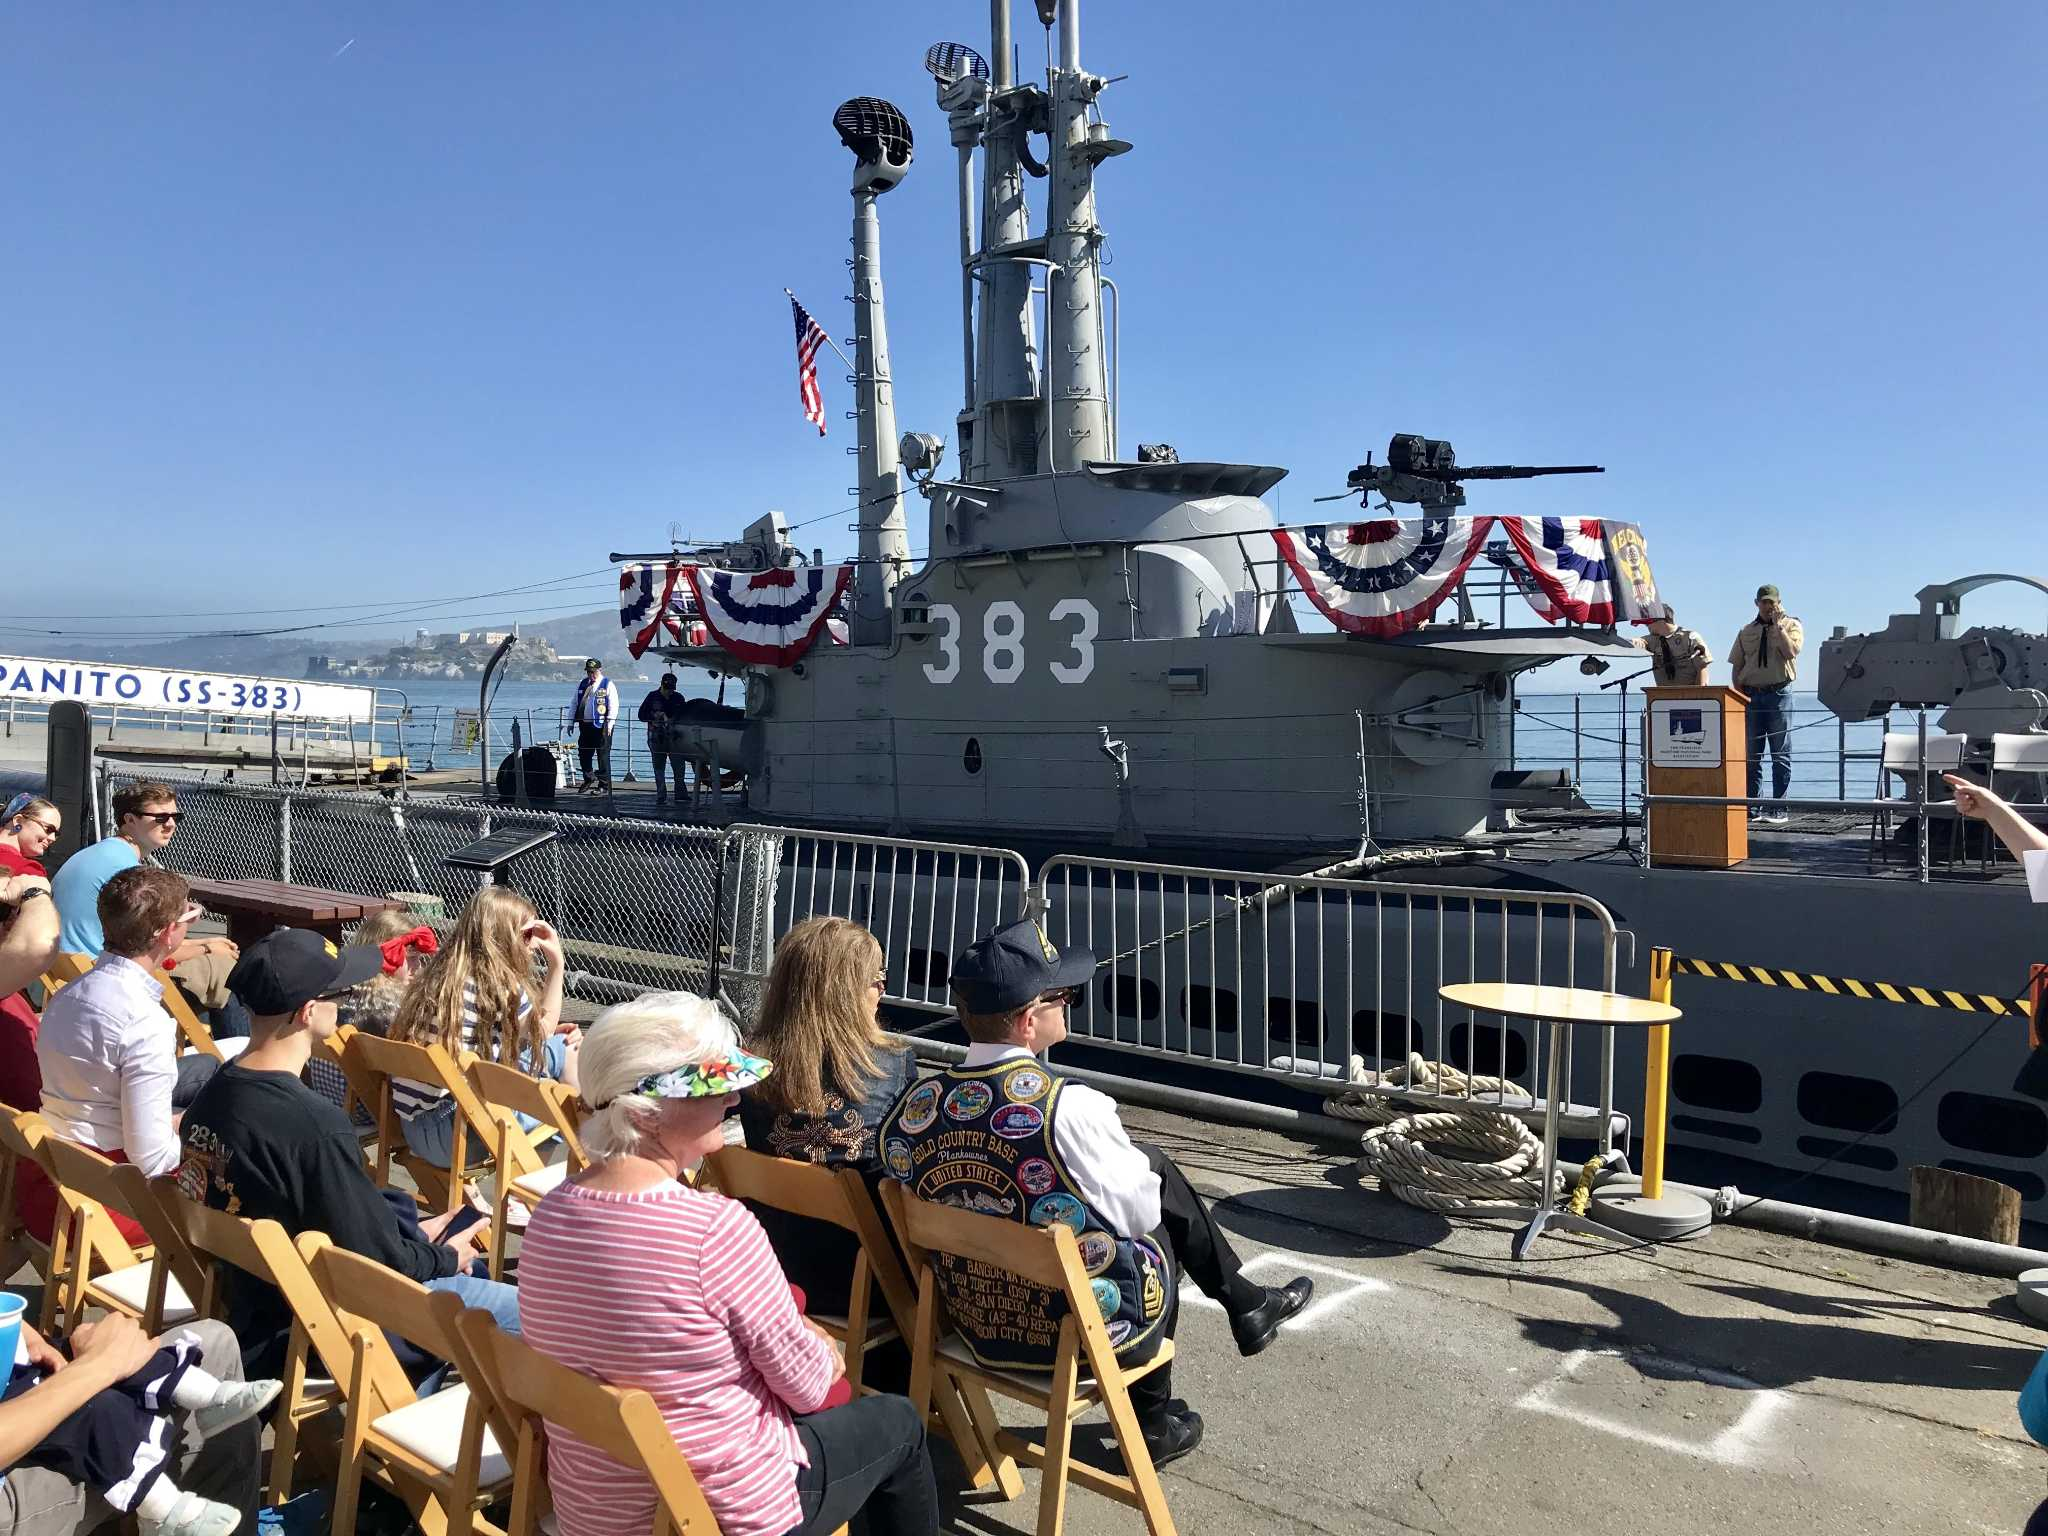 the bell tolls 52 times on memorial day for wwii submariners